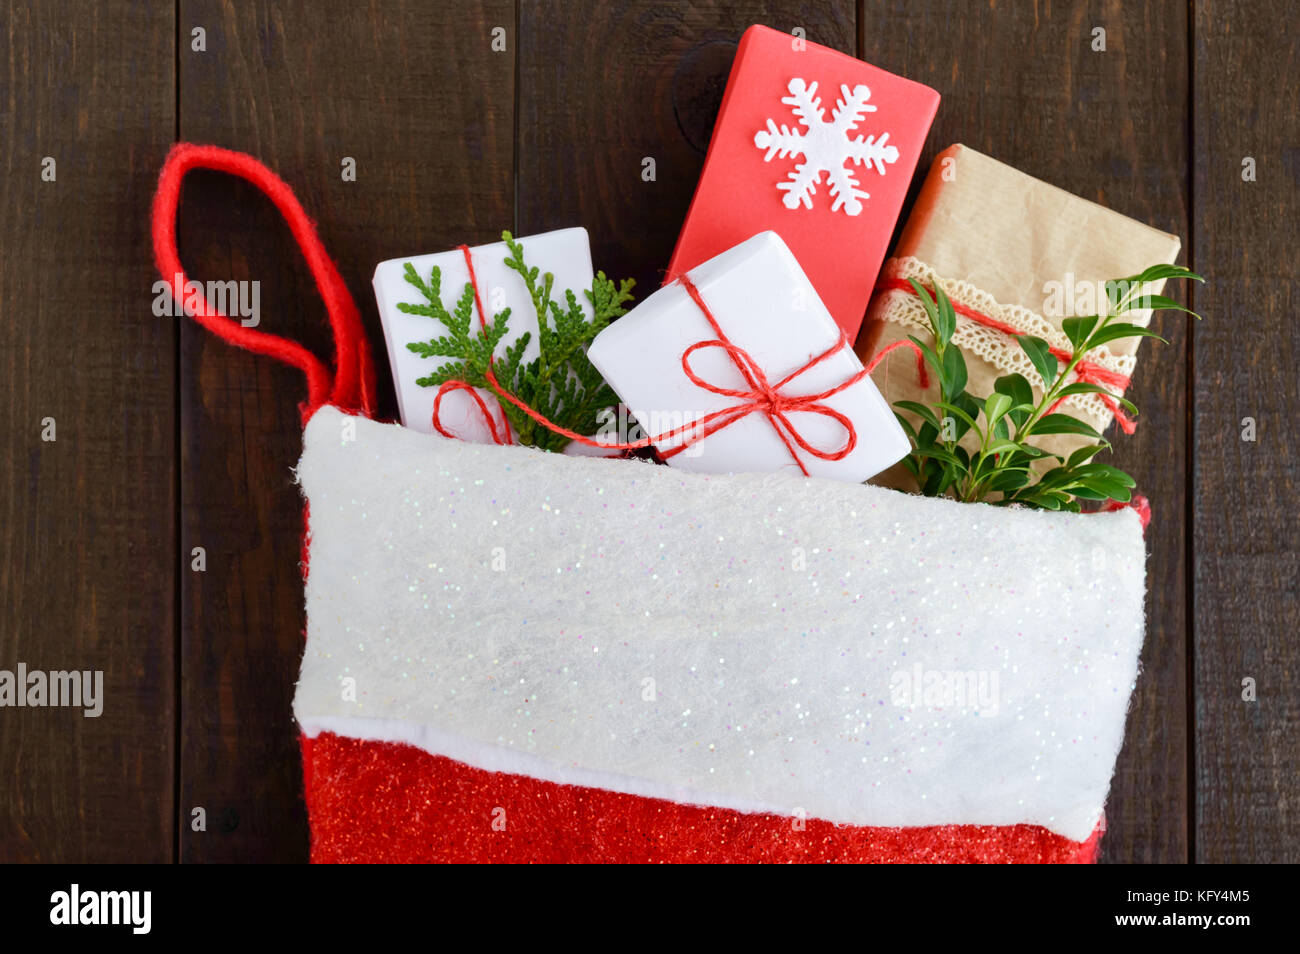 Christmas, New Year's boot for gifts, full of gift boxes on a dark wooden background. Theme of winter holidays. - Stock Image